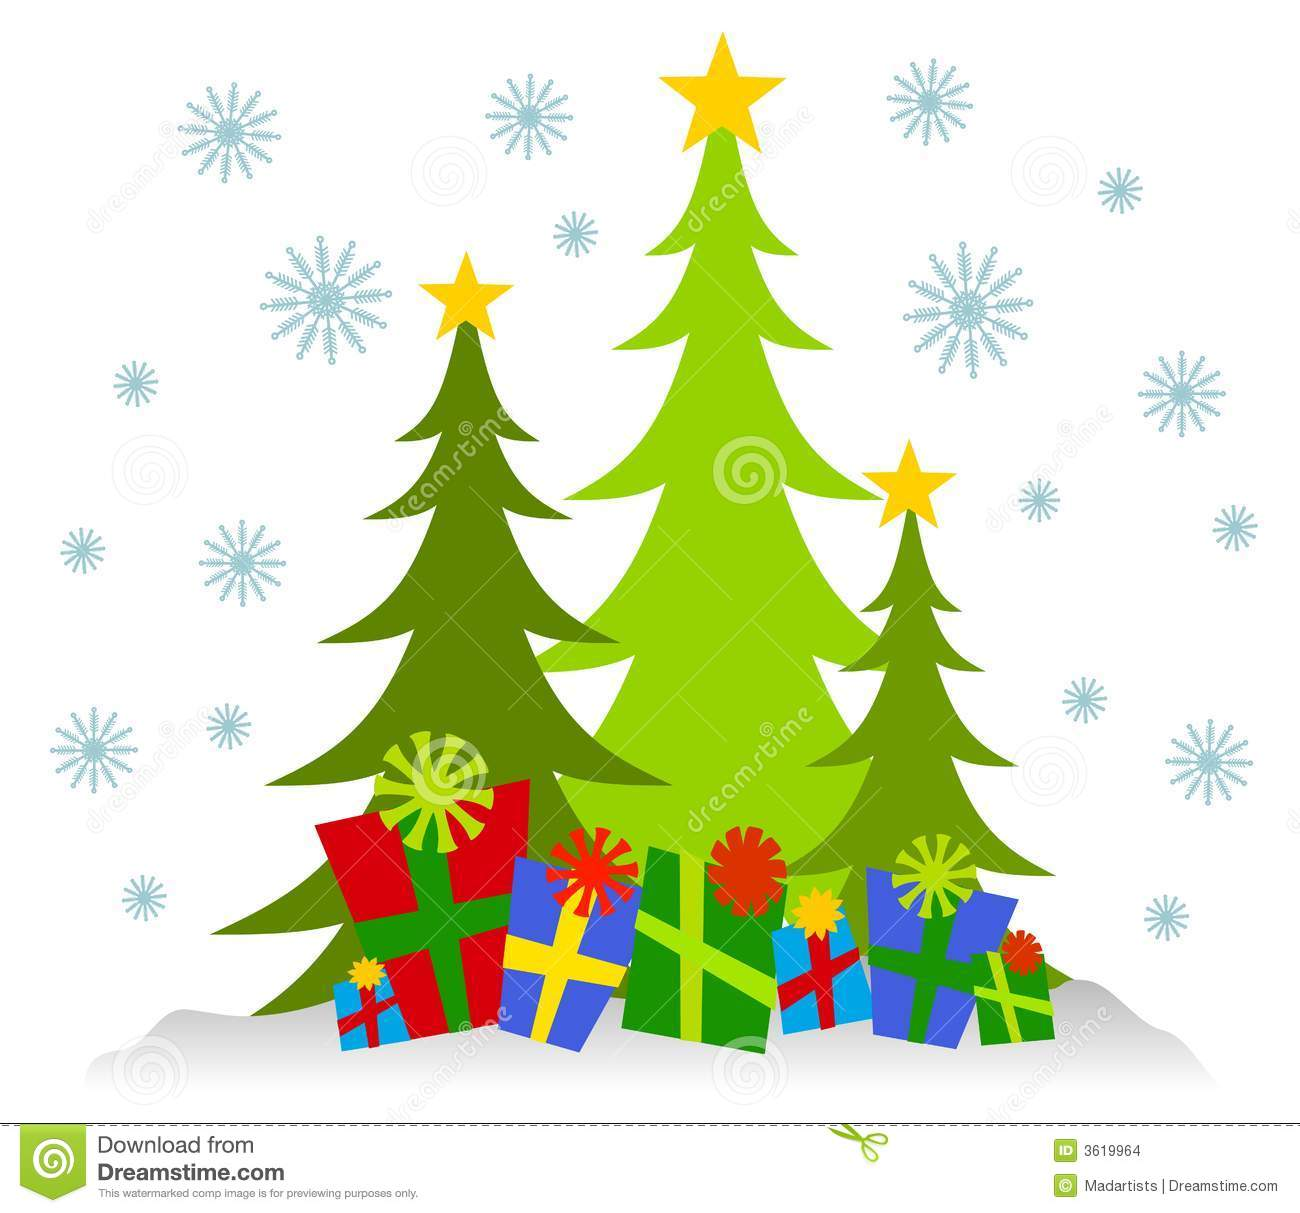 cartoonish christmas trees and presents stock illustration rh dreamstime com christmas nativity scene clipart christmas scenes clipart